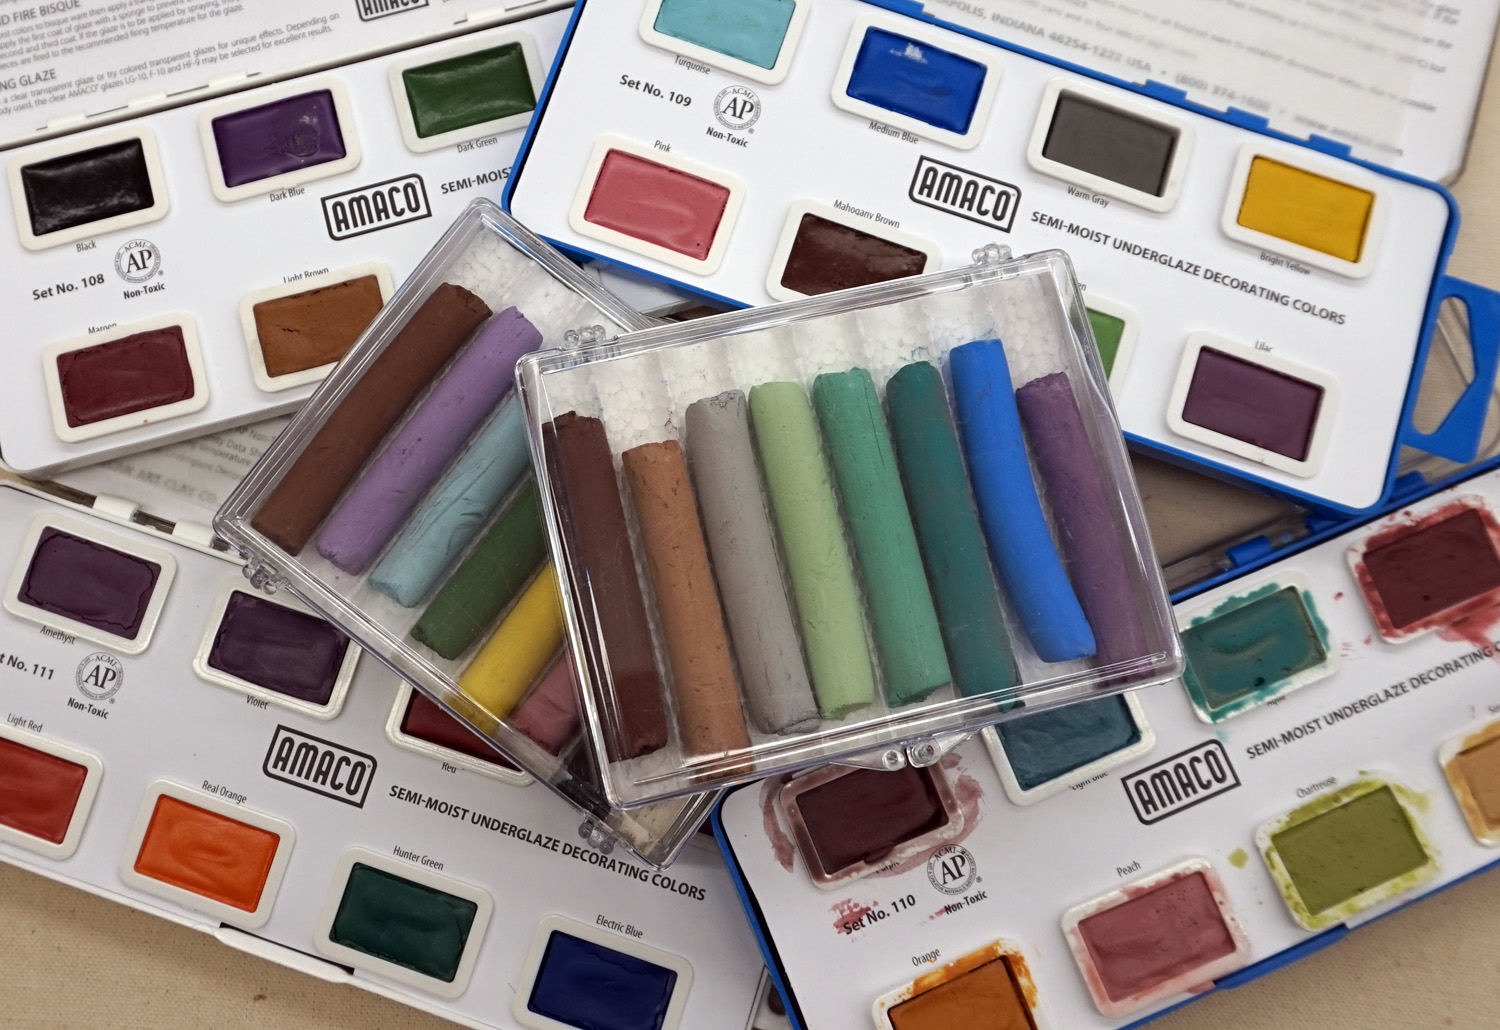 Amaco's  Semi-Moist Underglazes  and Decorating Chalk Crayons are part of the Studio's inventory, as are Mayco's  Designer Liners .